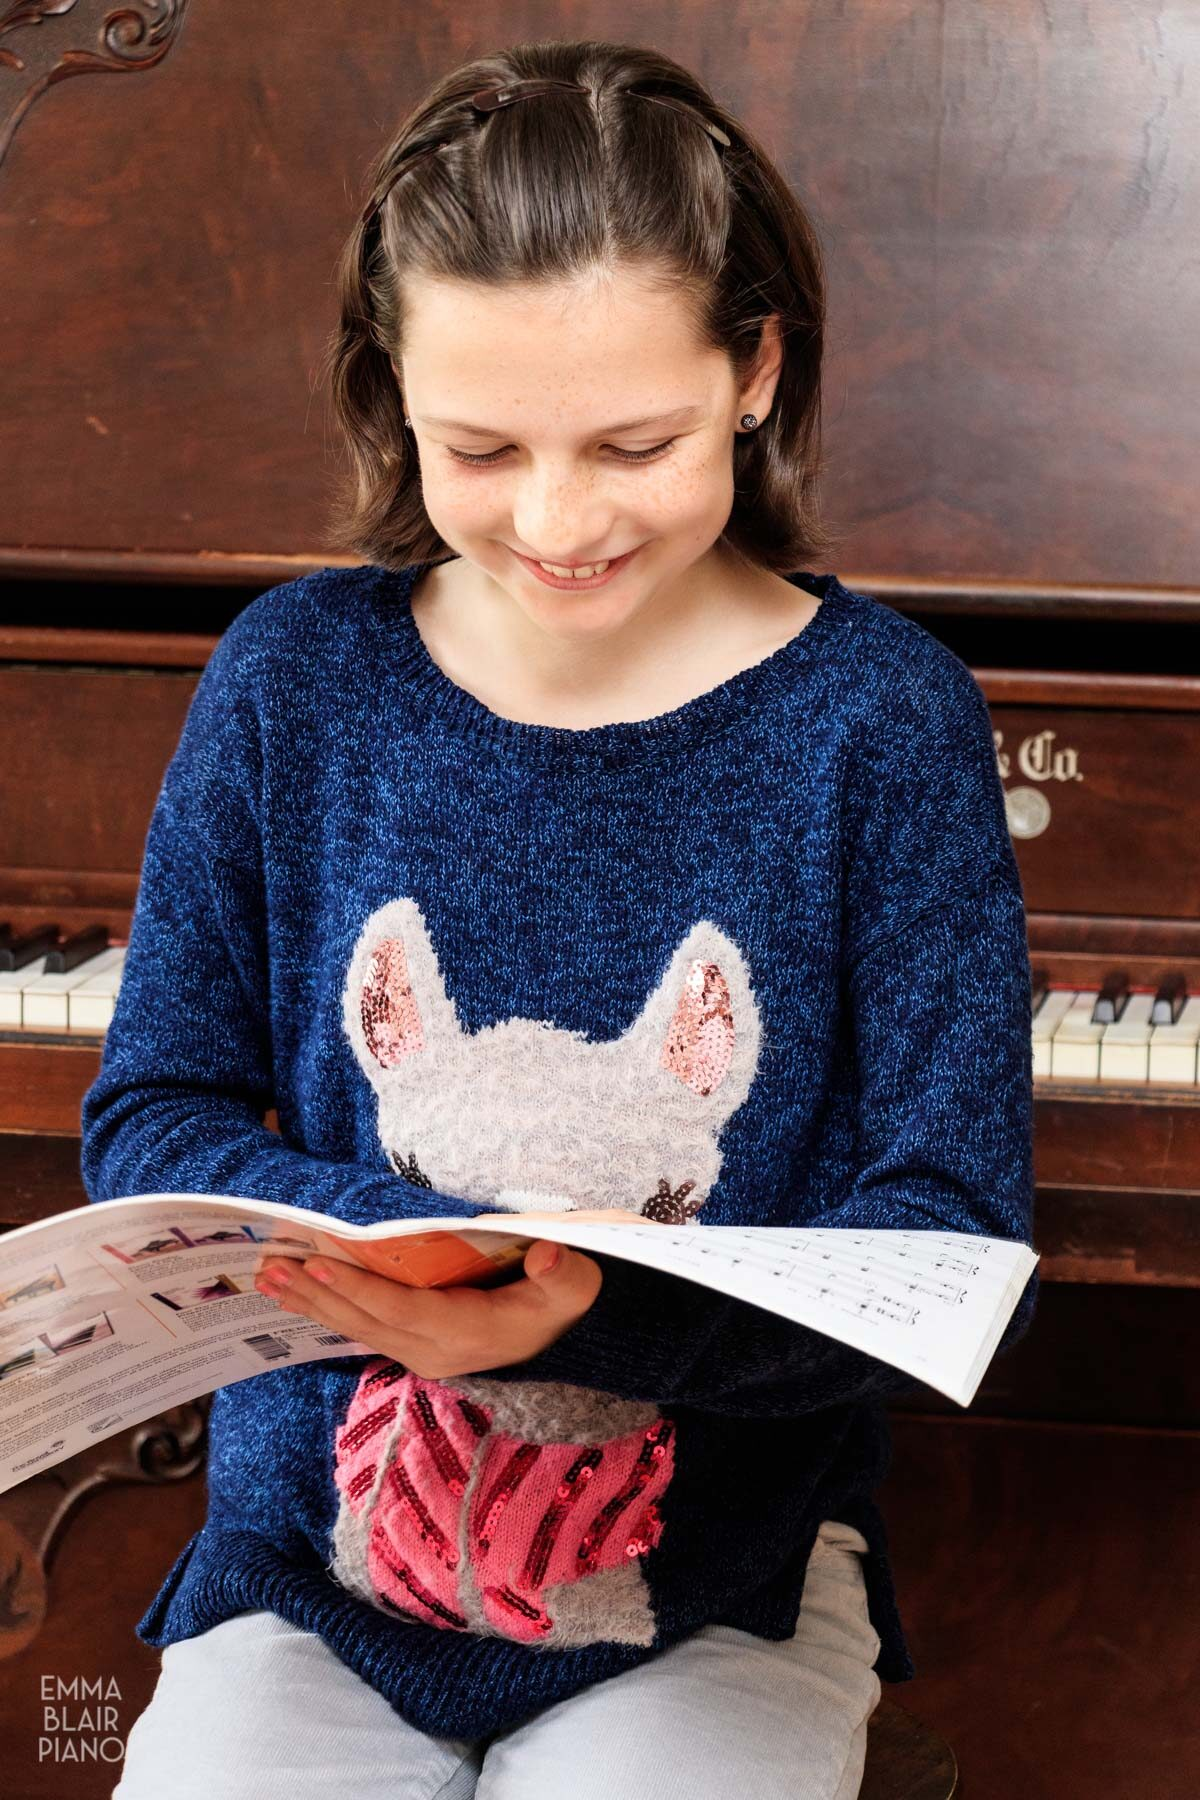 young girl smiling while holding a book of piano music